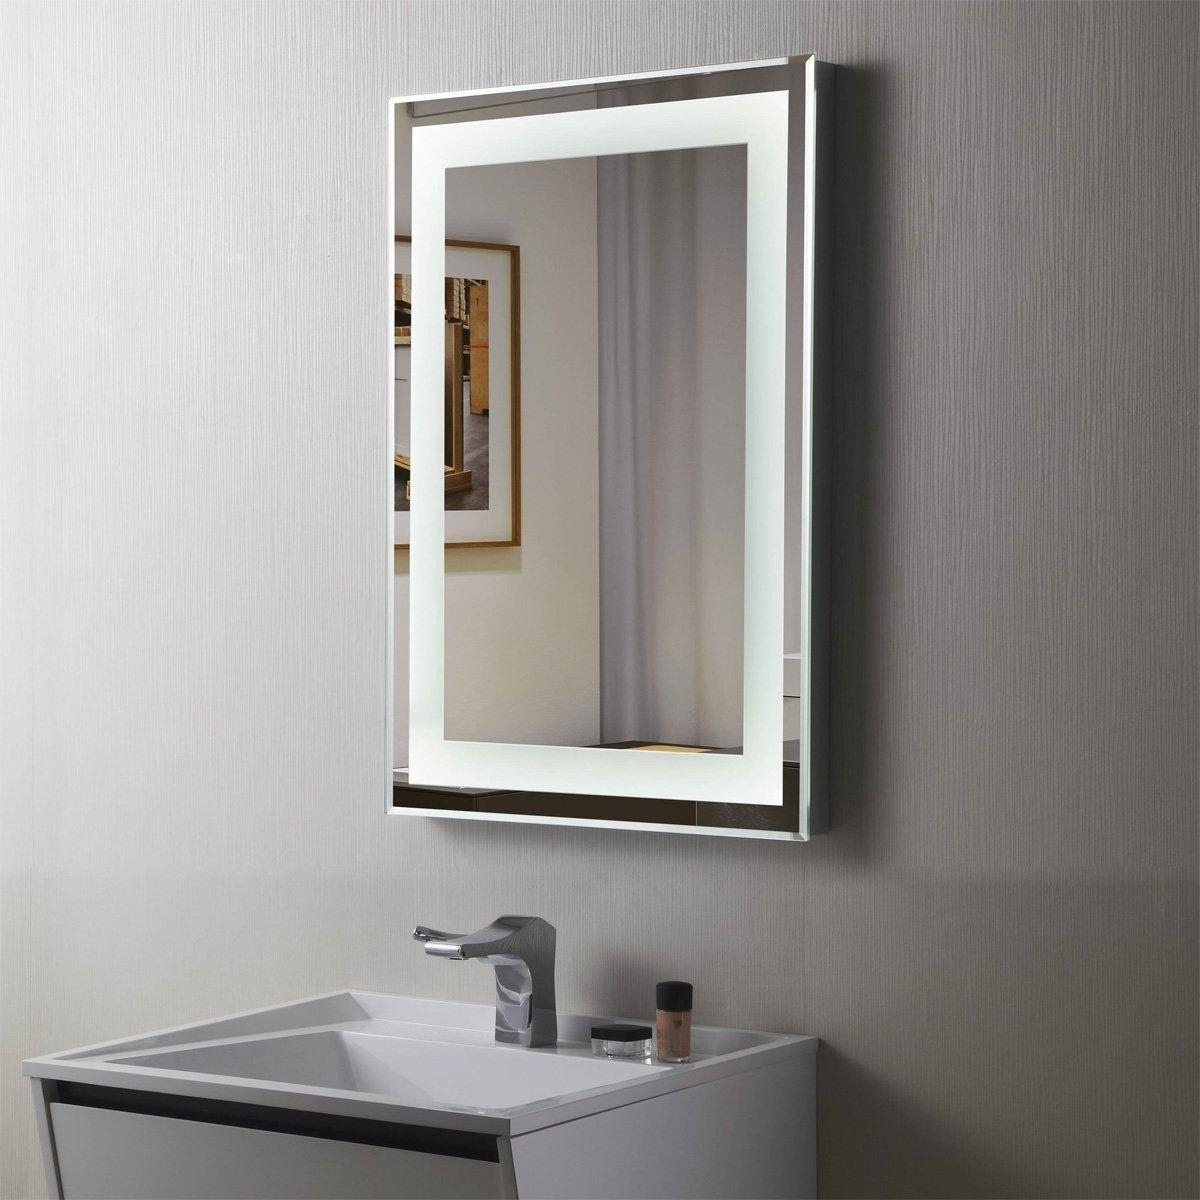 Bathroom: Elegant Bathroom Decor With Large Framed Bathroom With Huge Mirrors For Sale (Image 2 of 20)